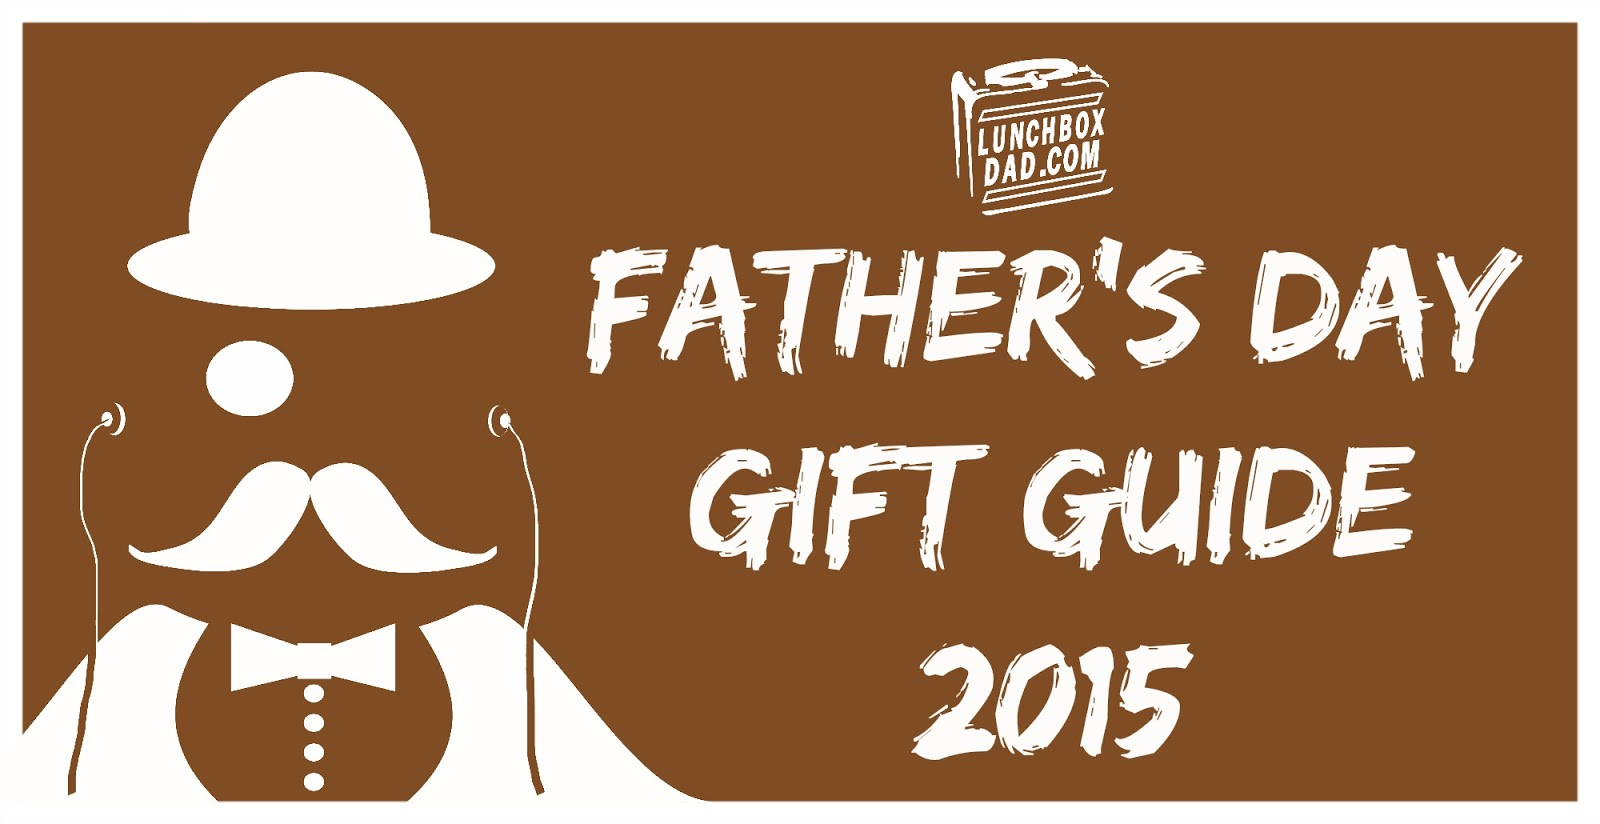 Lunchbox Dad: Lunchbox Dad's Father's Day Gift Guide 2015